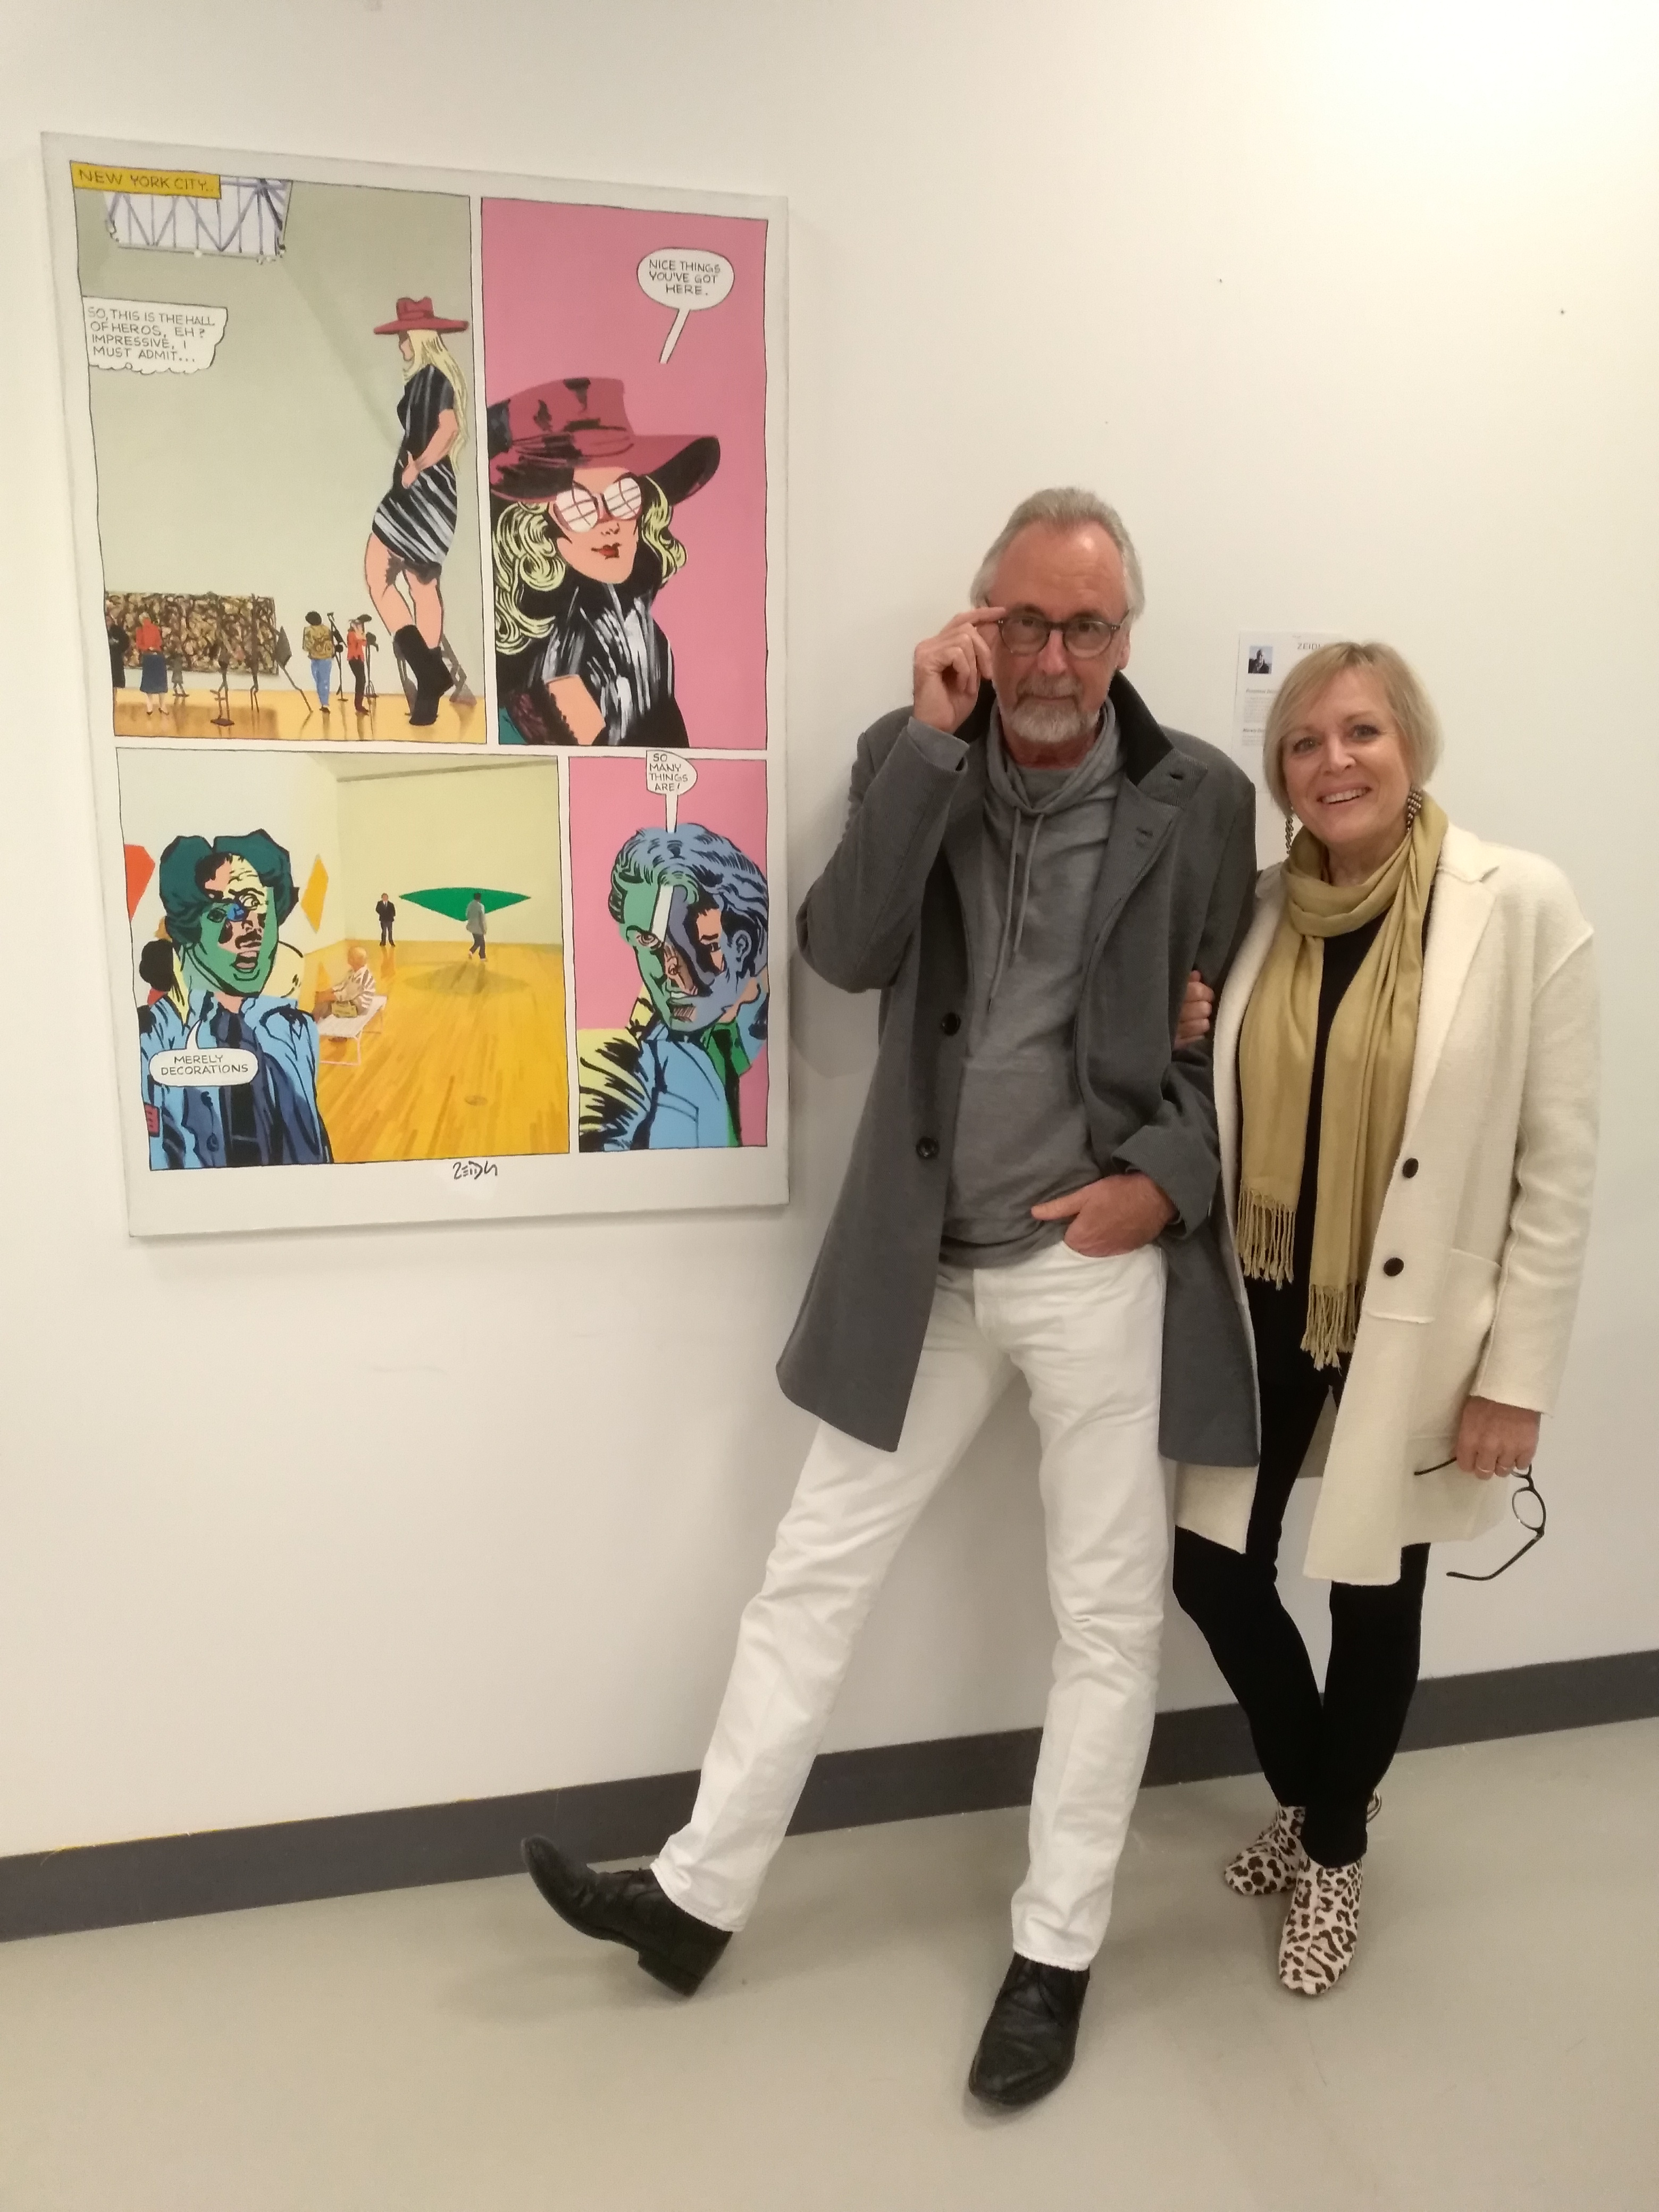 Frank and Nadine at the vernissage